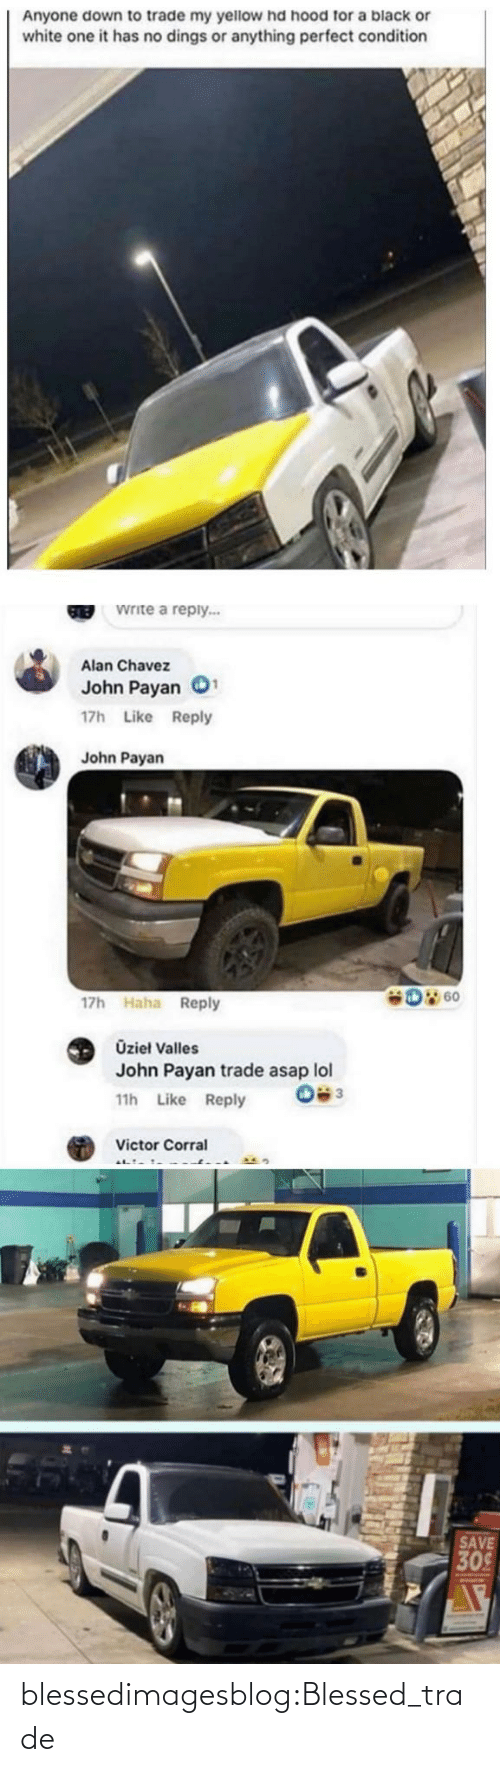 Down To: Anyone down to trade my yellow hd hood for a black or  white one it has no dings or anything perfect condition  Write a reply...  GREB  Alan Chavez  John Payan  17h Like Reply  John Payan  D 60  17h Haha Reply  Üzieł Valles  John Payan trade asap lol  11h Like Reply  Victor Corral  SAVE  309 blessedimagesblog:Blessed_trade